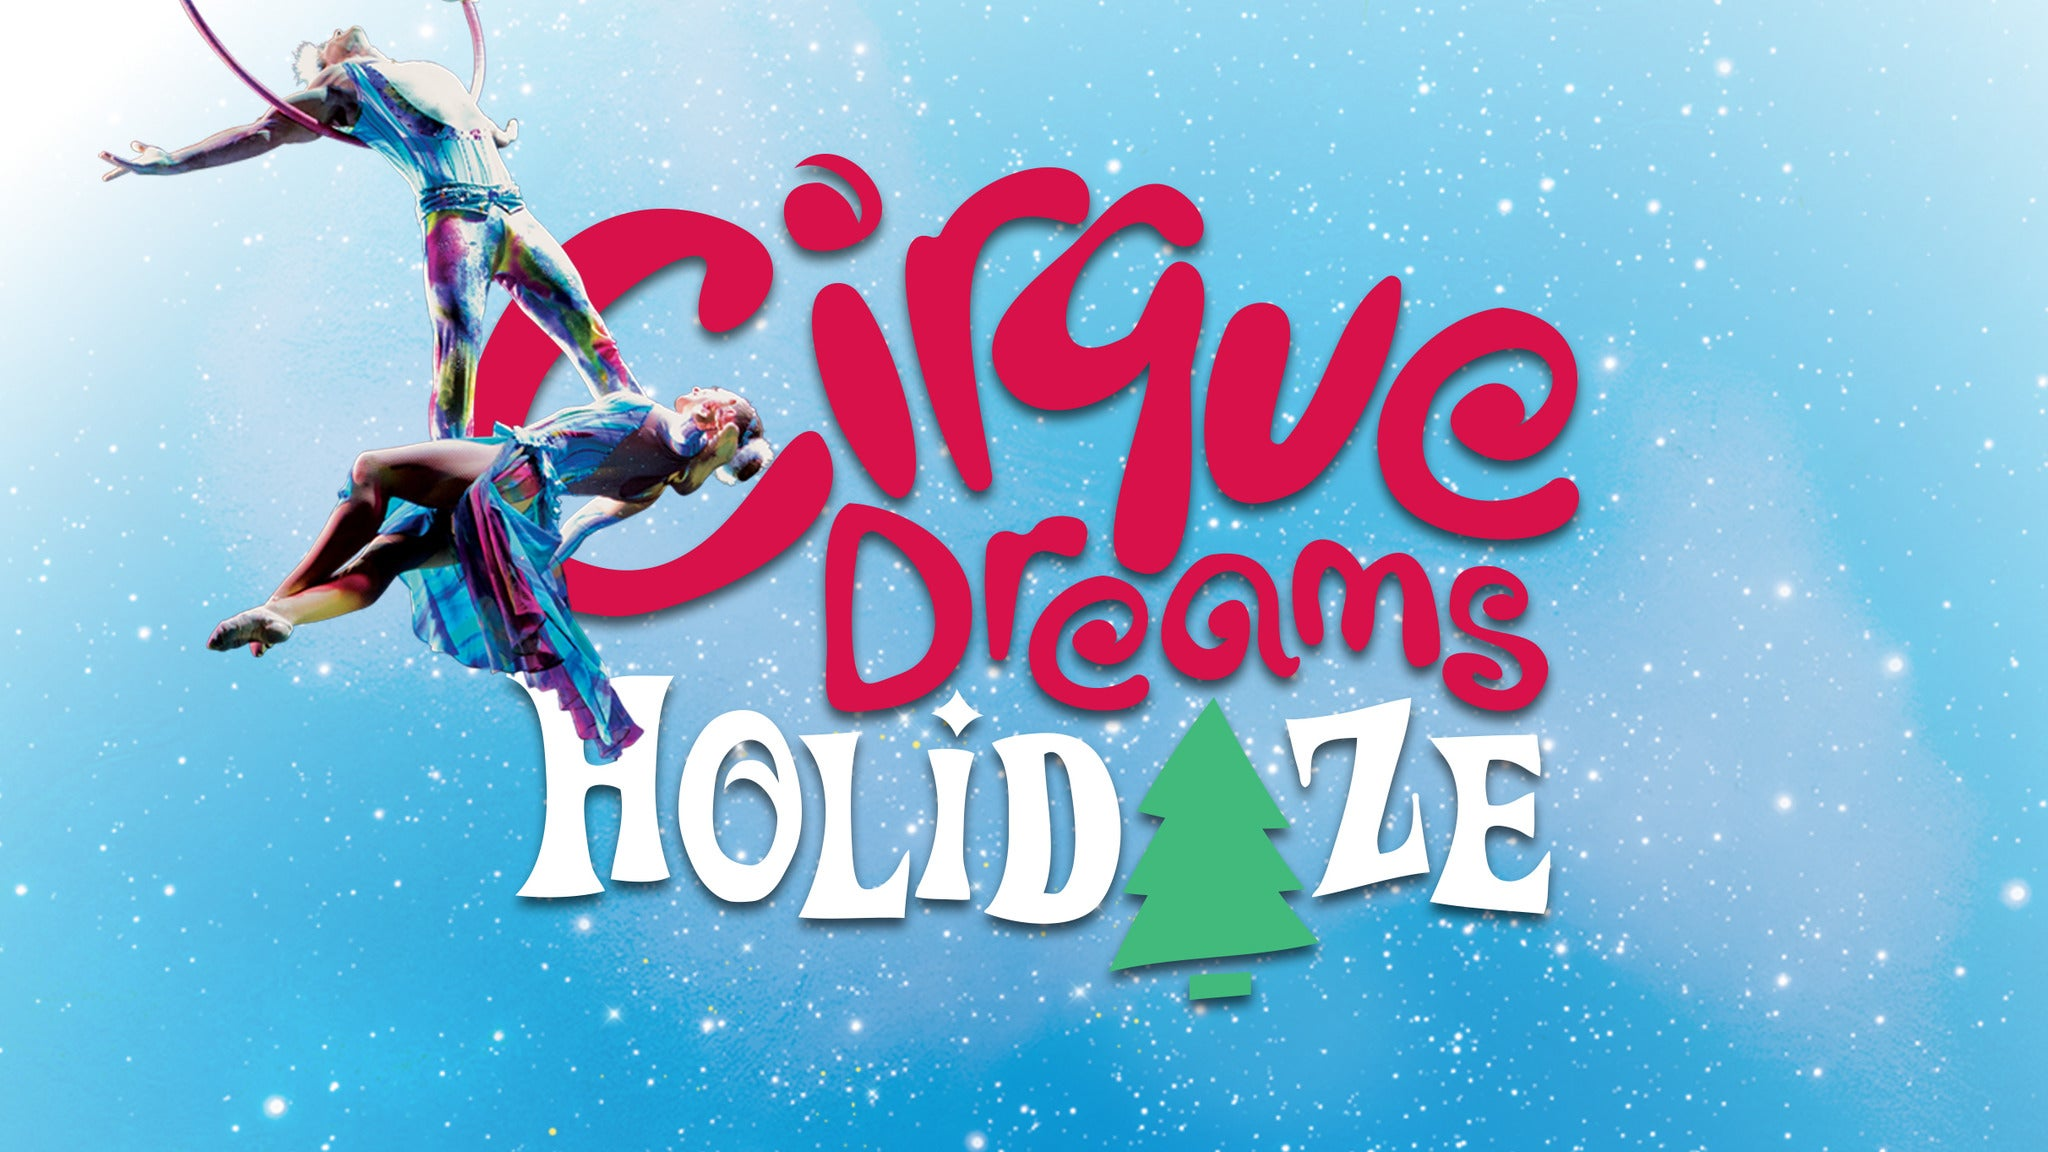 Cirque Dreams Holidaze (Touring) at Tivoli Theatre